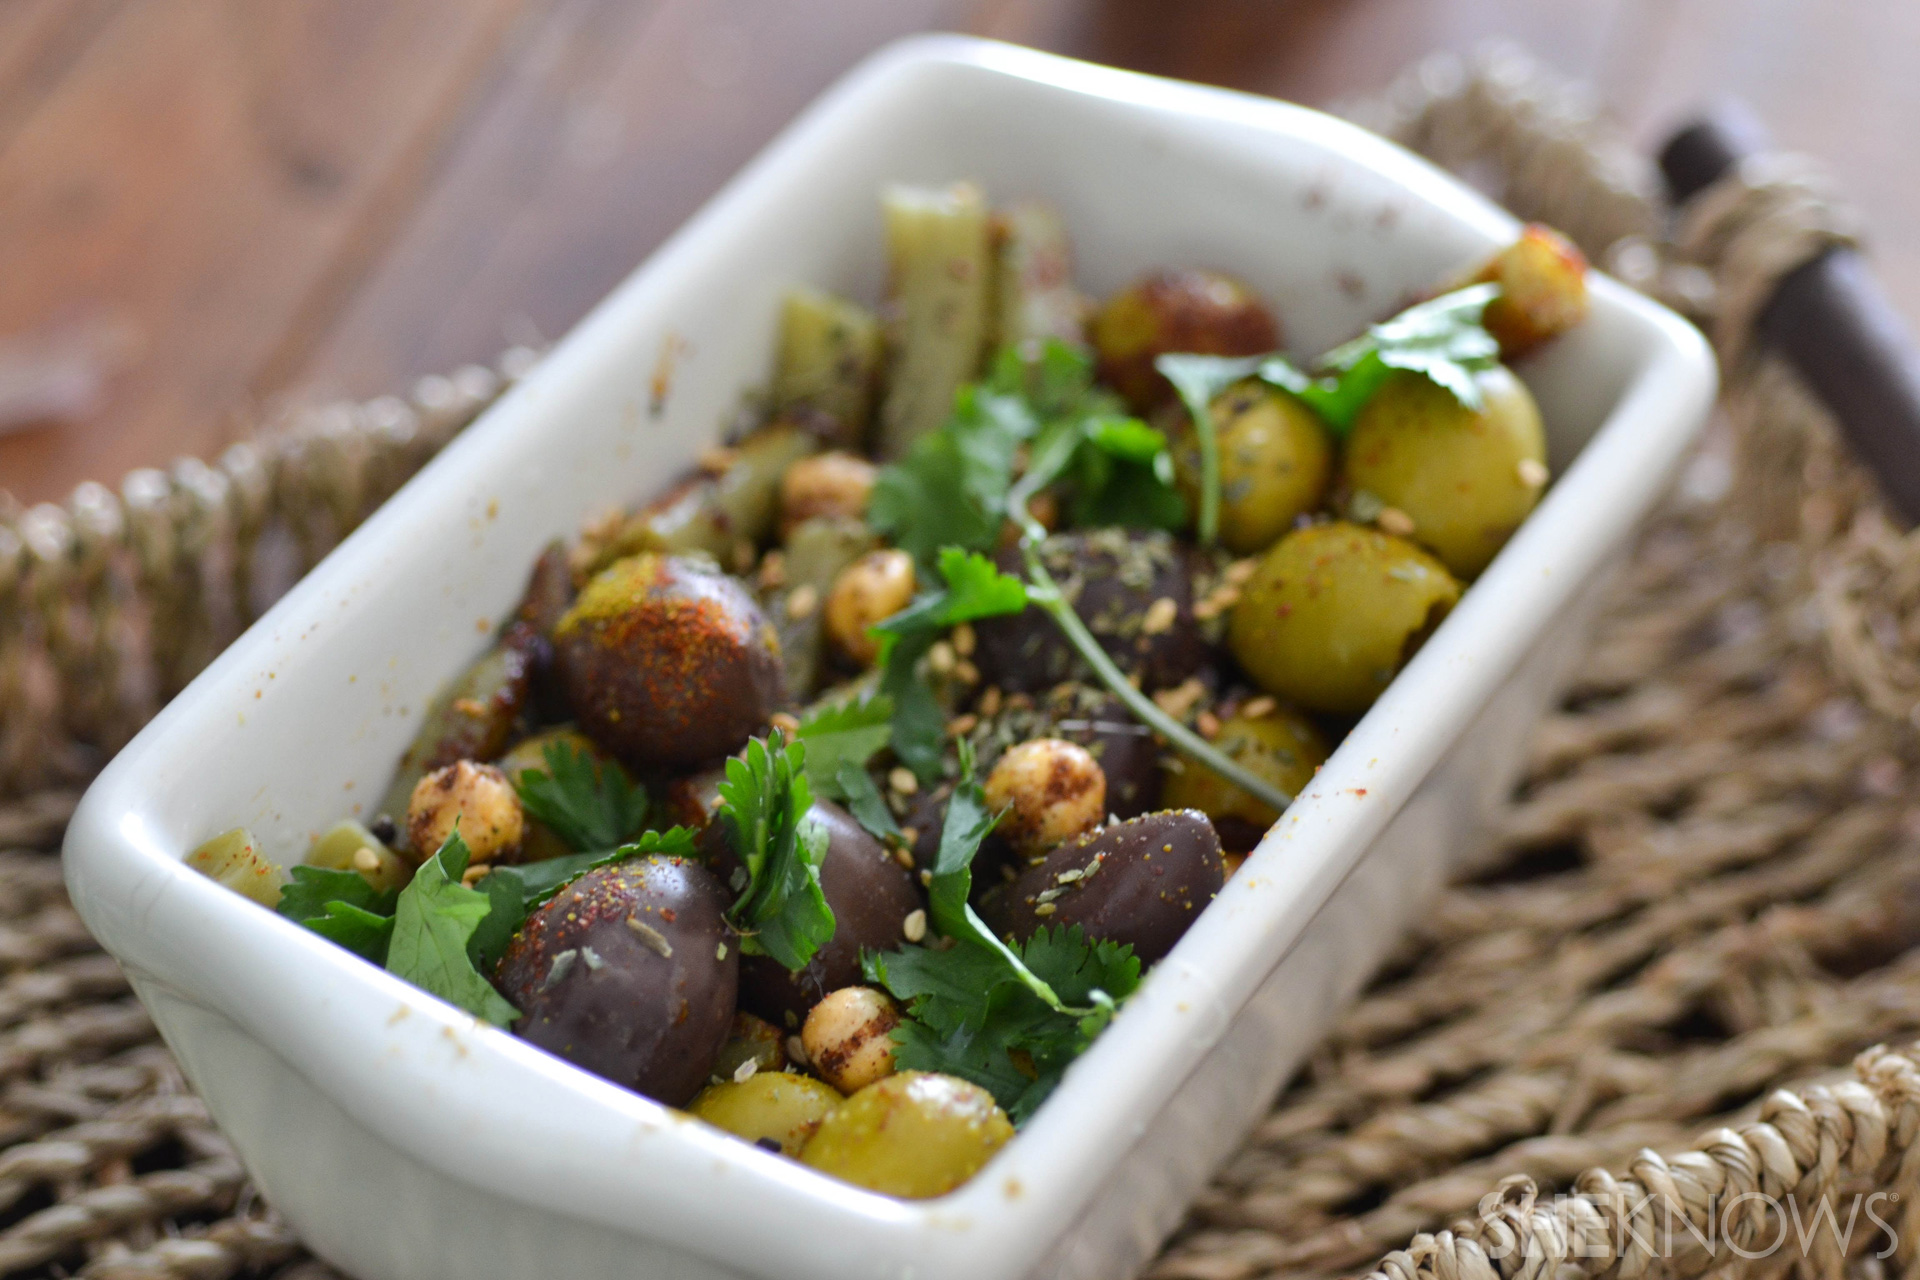 Spiced olives and crunchy green beans